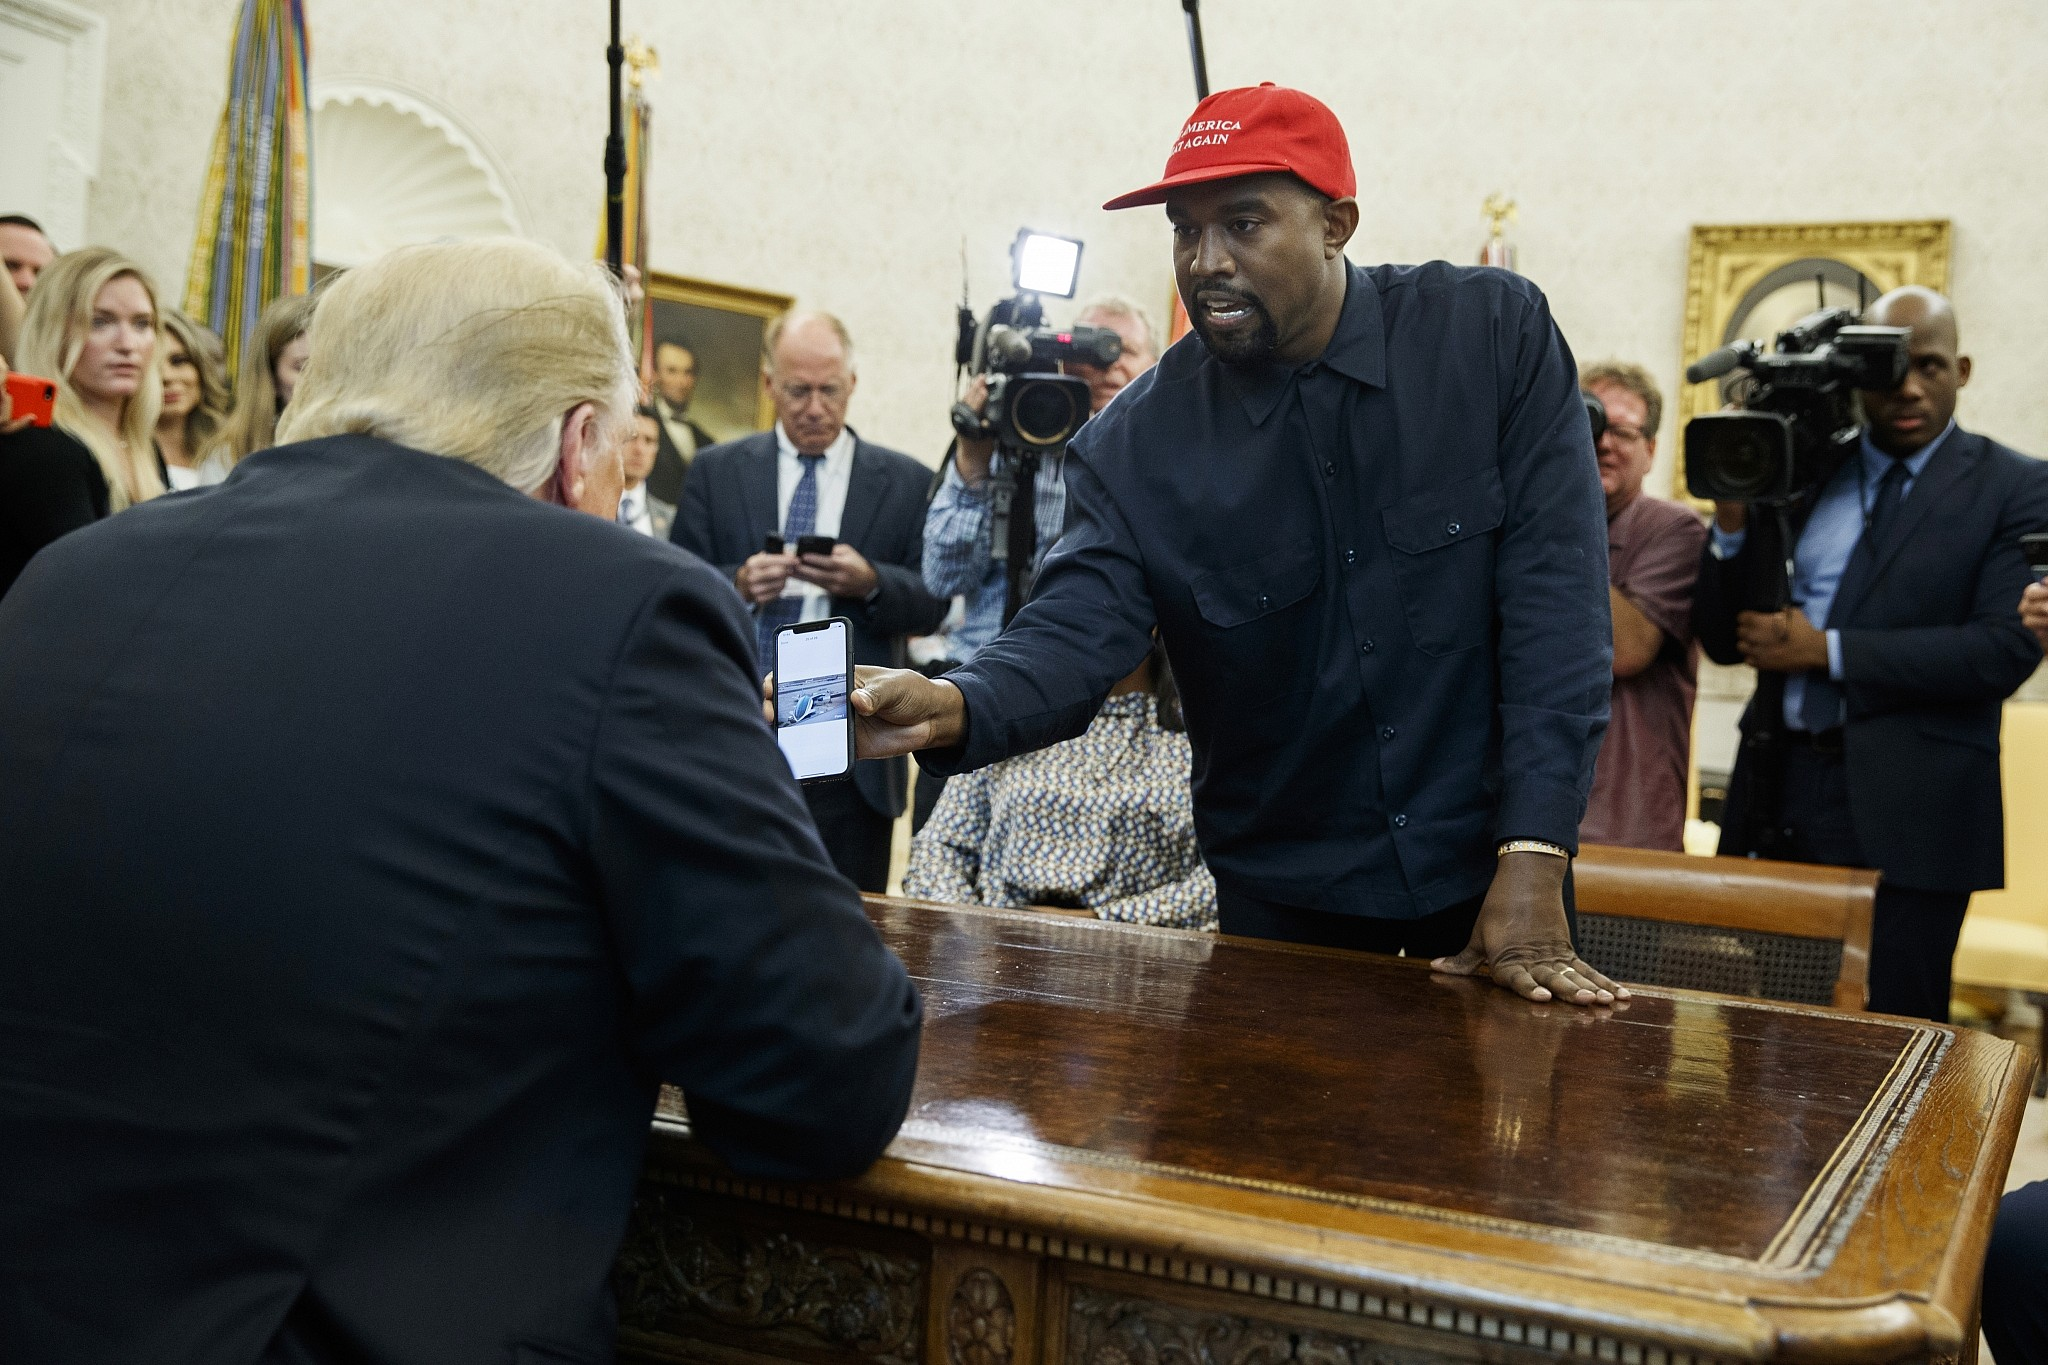 Trump Realizes Kanye Is 'Black Me'! During White House Visit